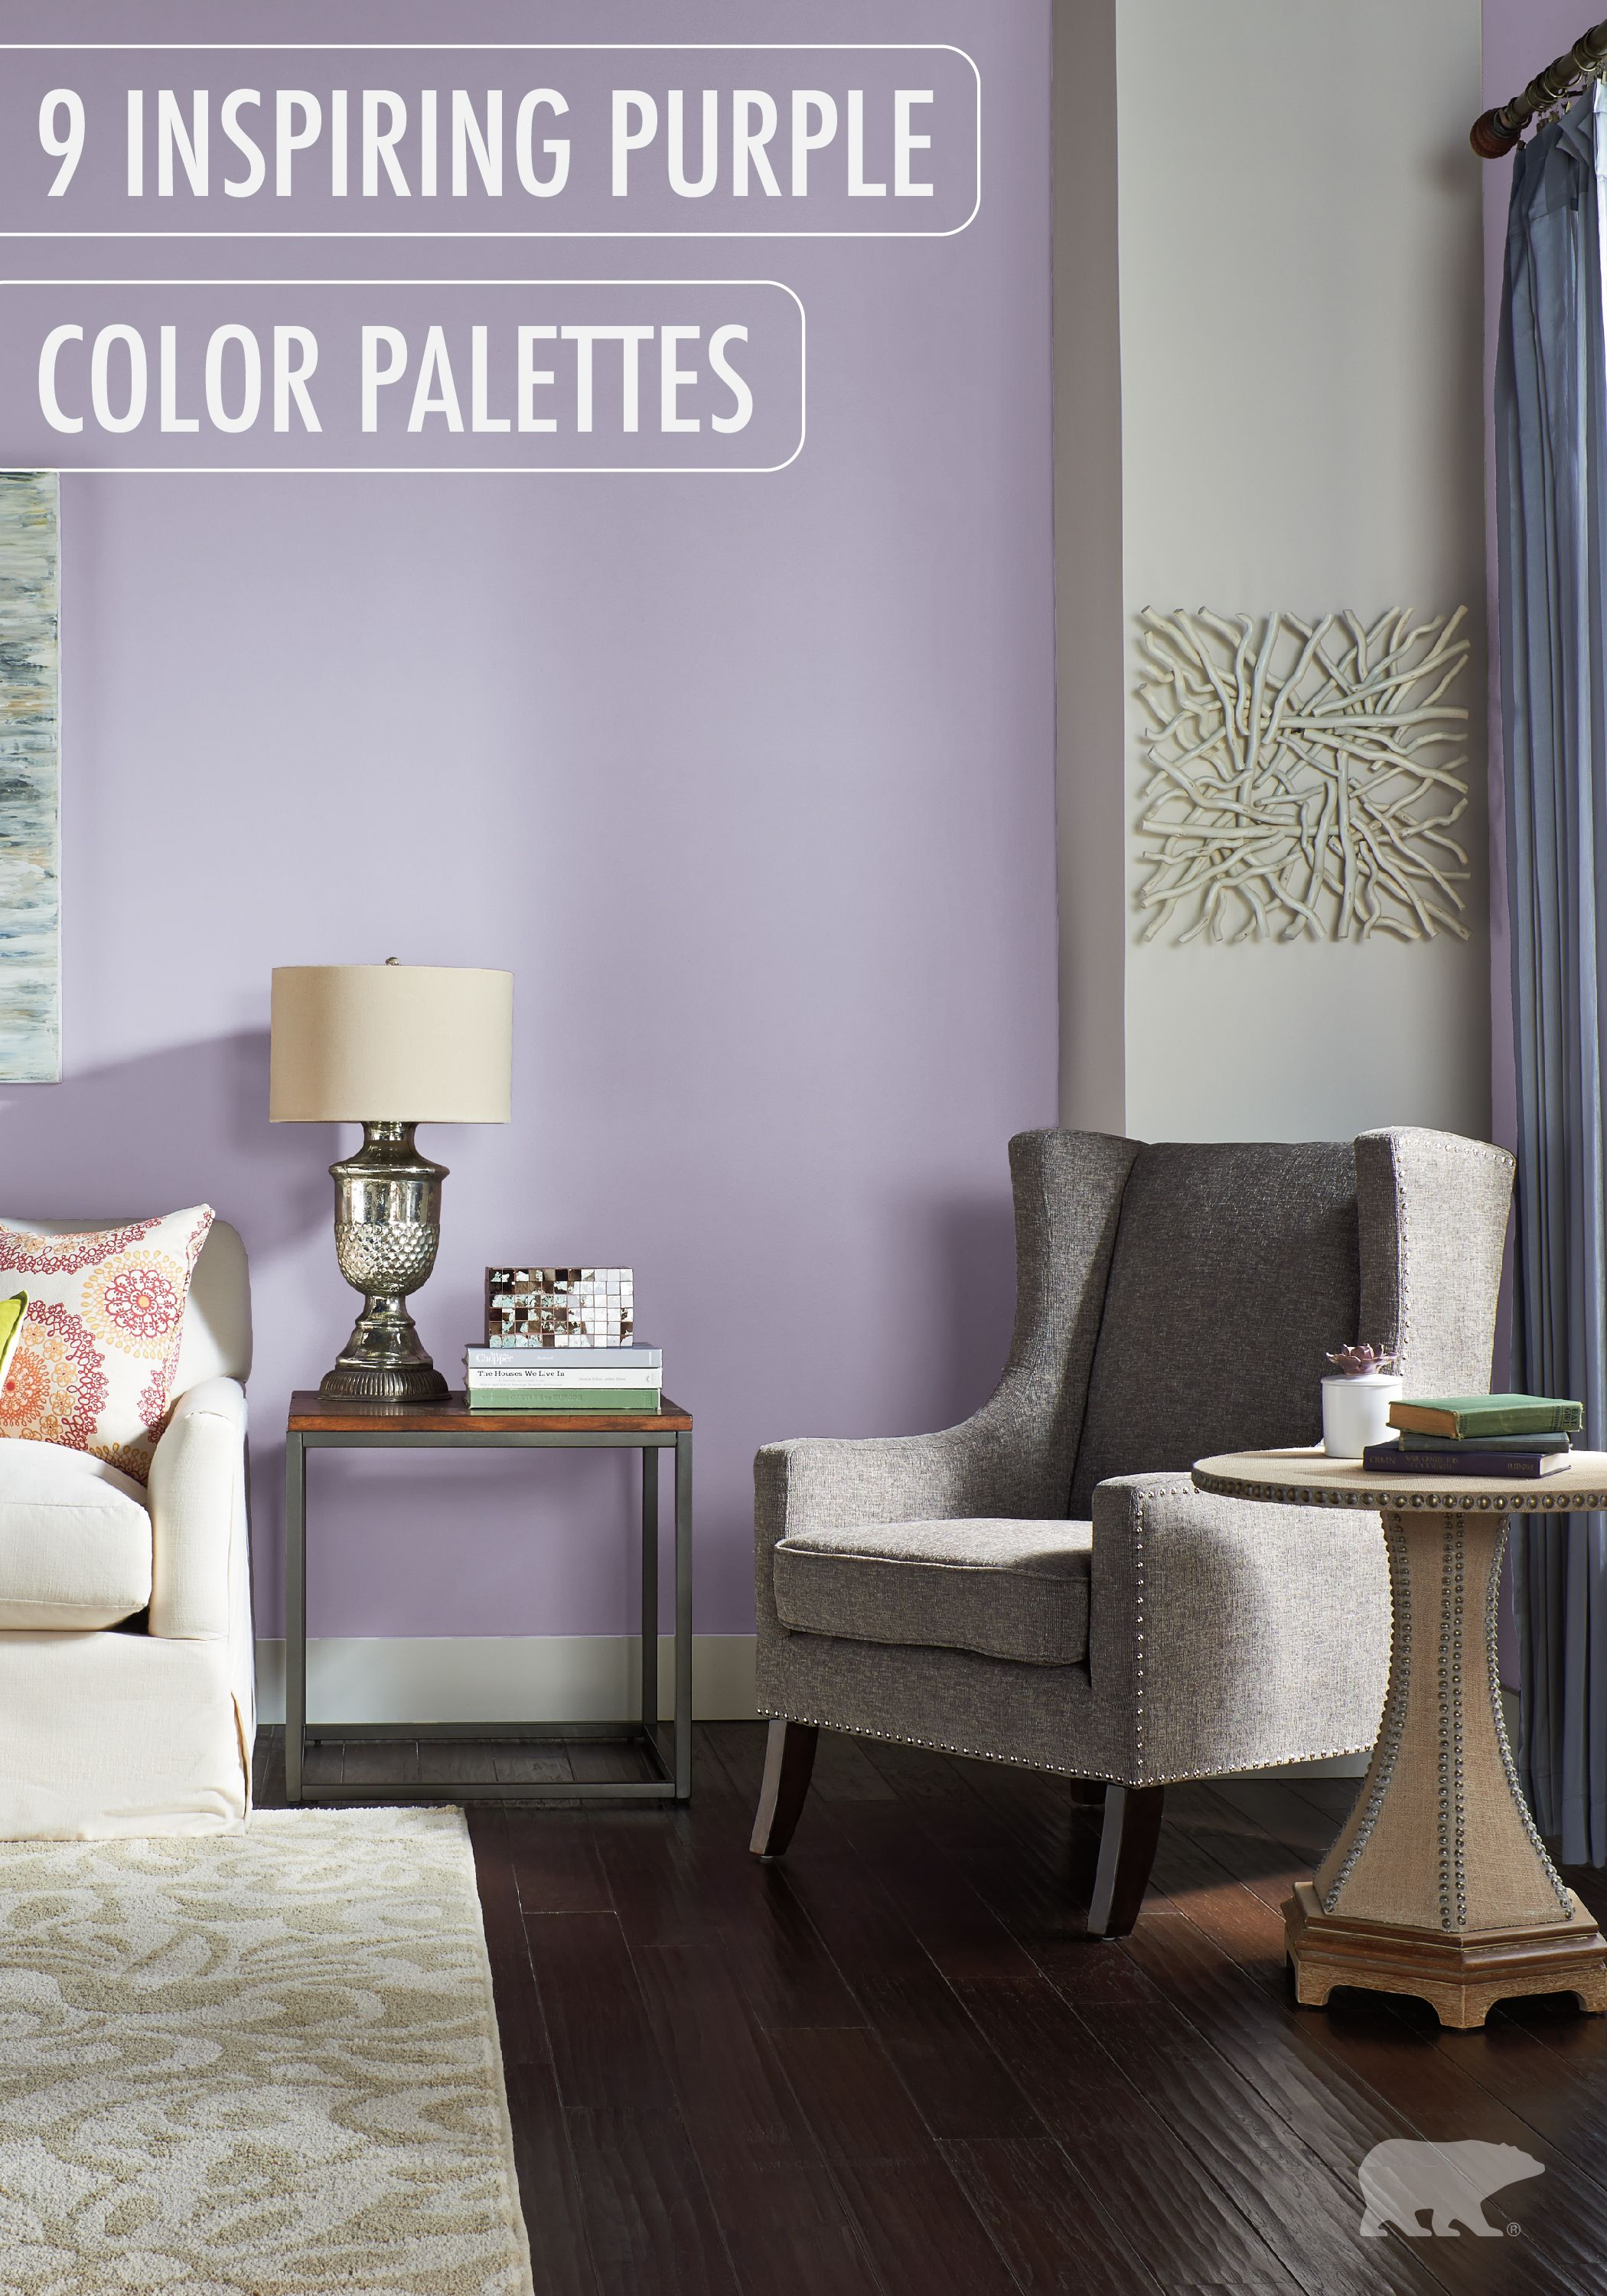 Purple Painted Room Design Inspiration And Project Idea Gallery